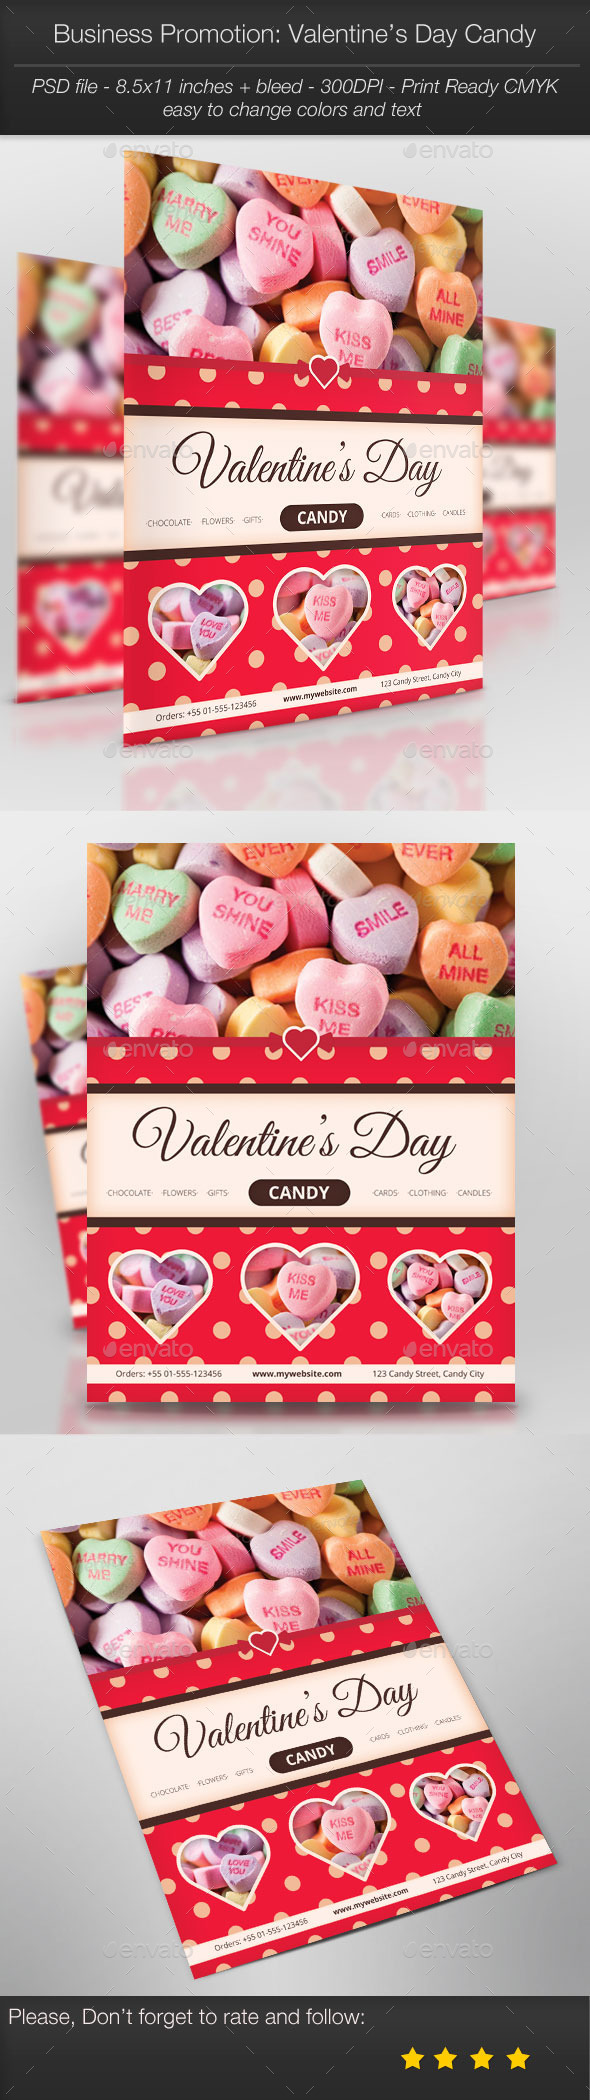 GraphicRiver Business Promotion Valentine's Day Candy 10130790